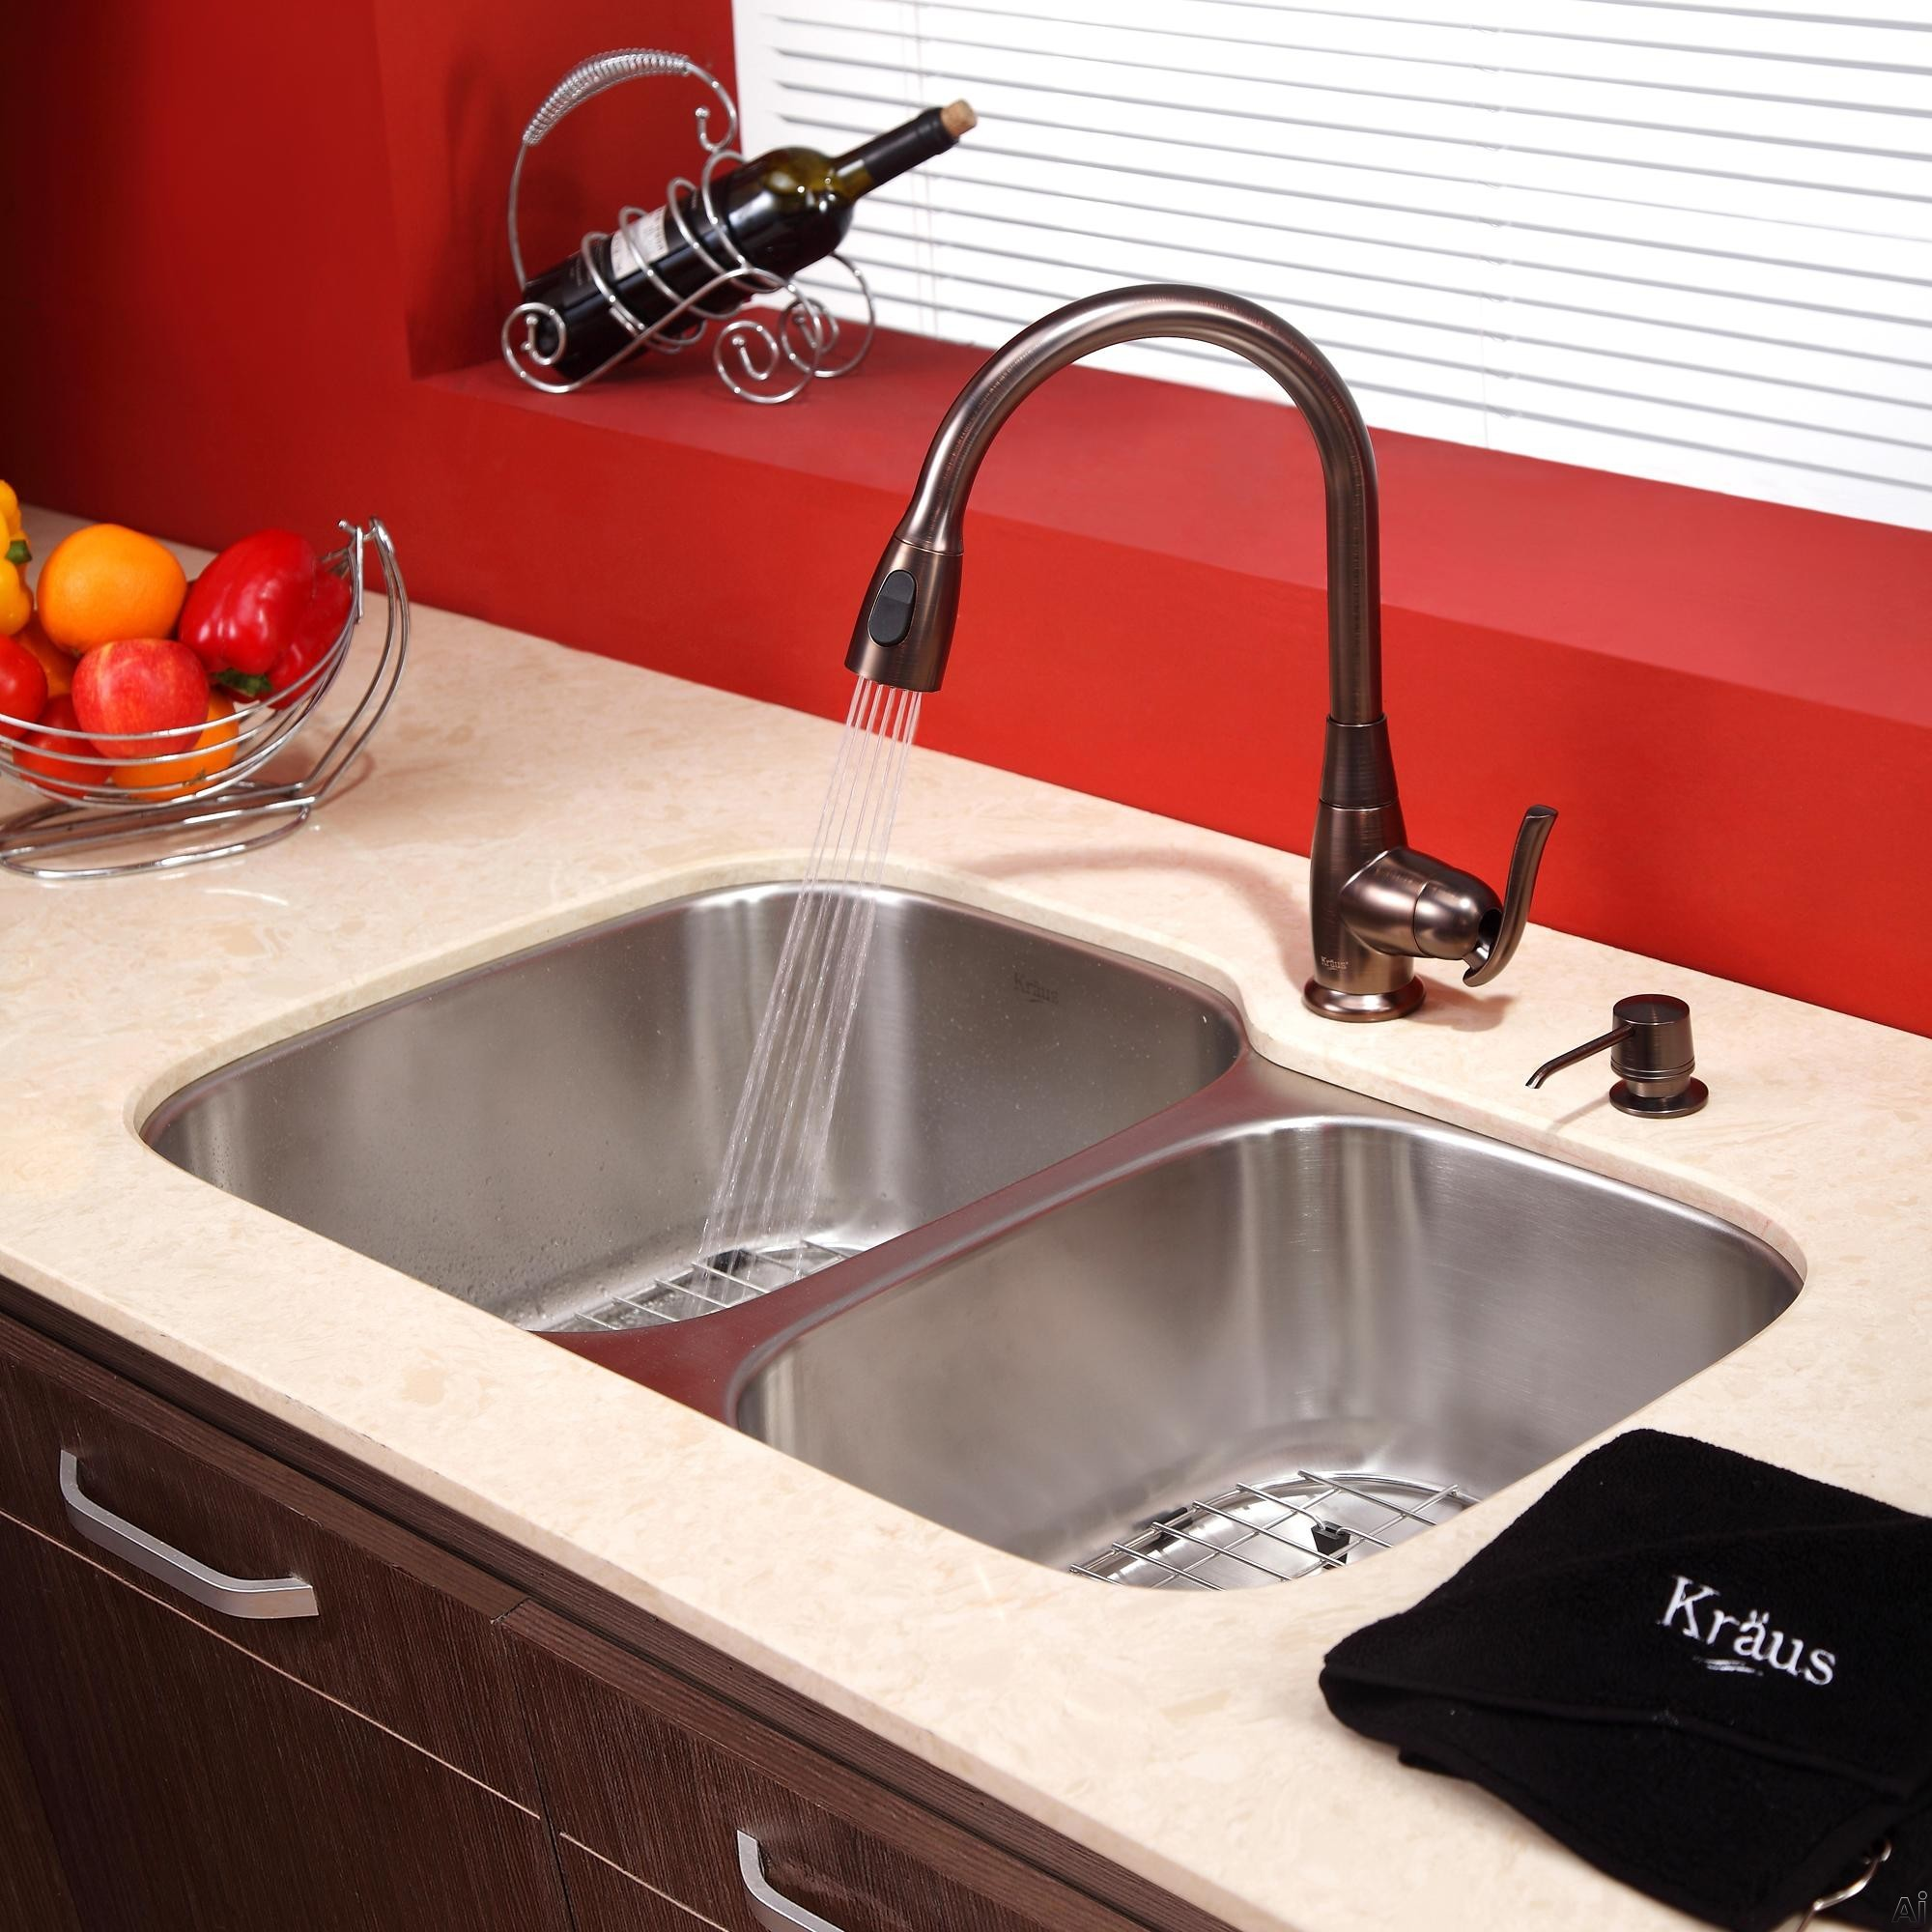 Kraus kbu24kpf2230ksd30orb 32 undermount double bowl for Oiled bronze faucet with stainless steel sink